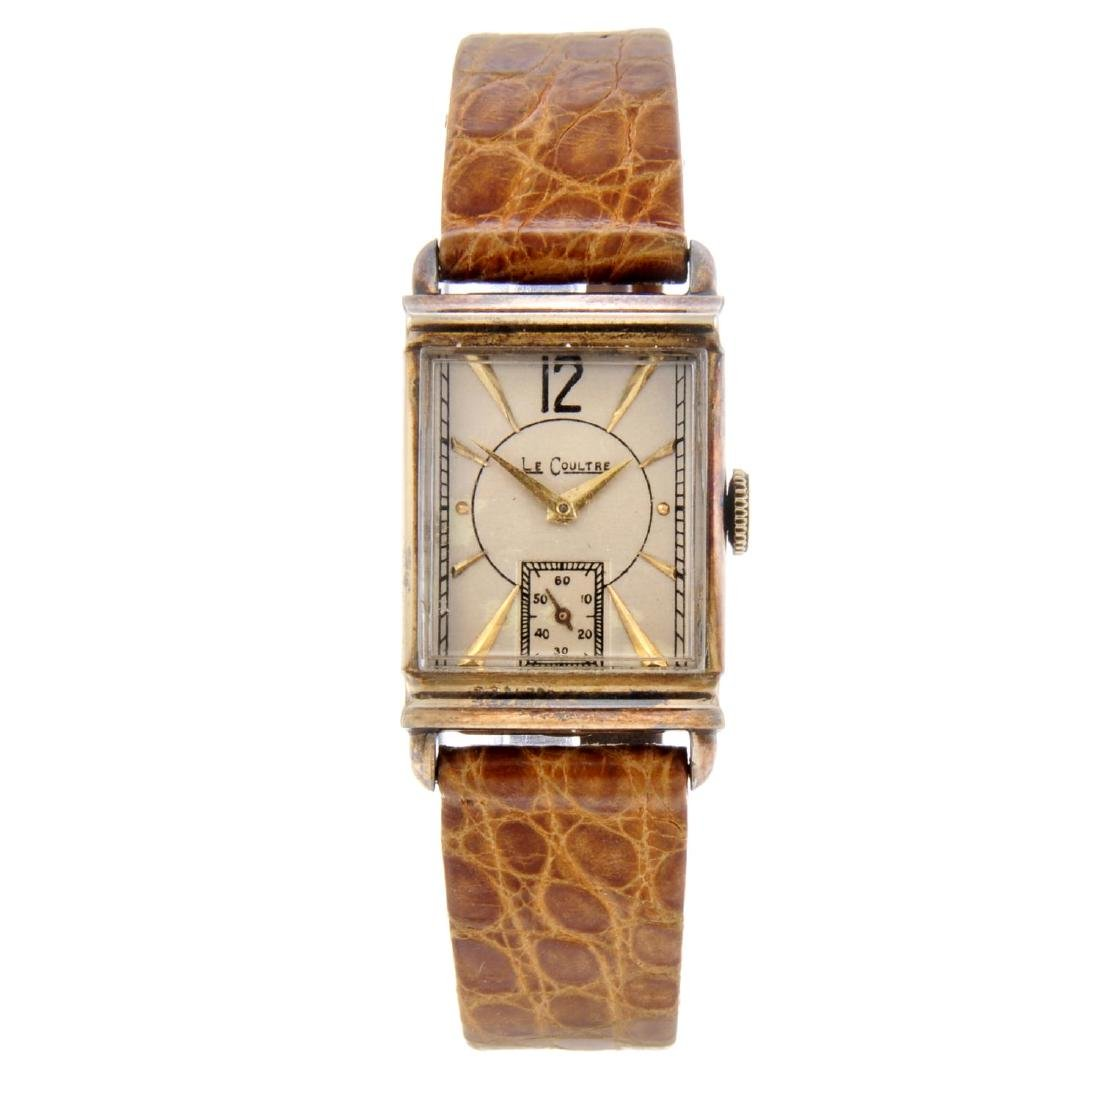 LECOULTRE - a wrist watch. Gold plated case with